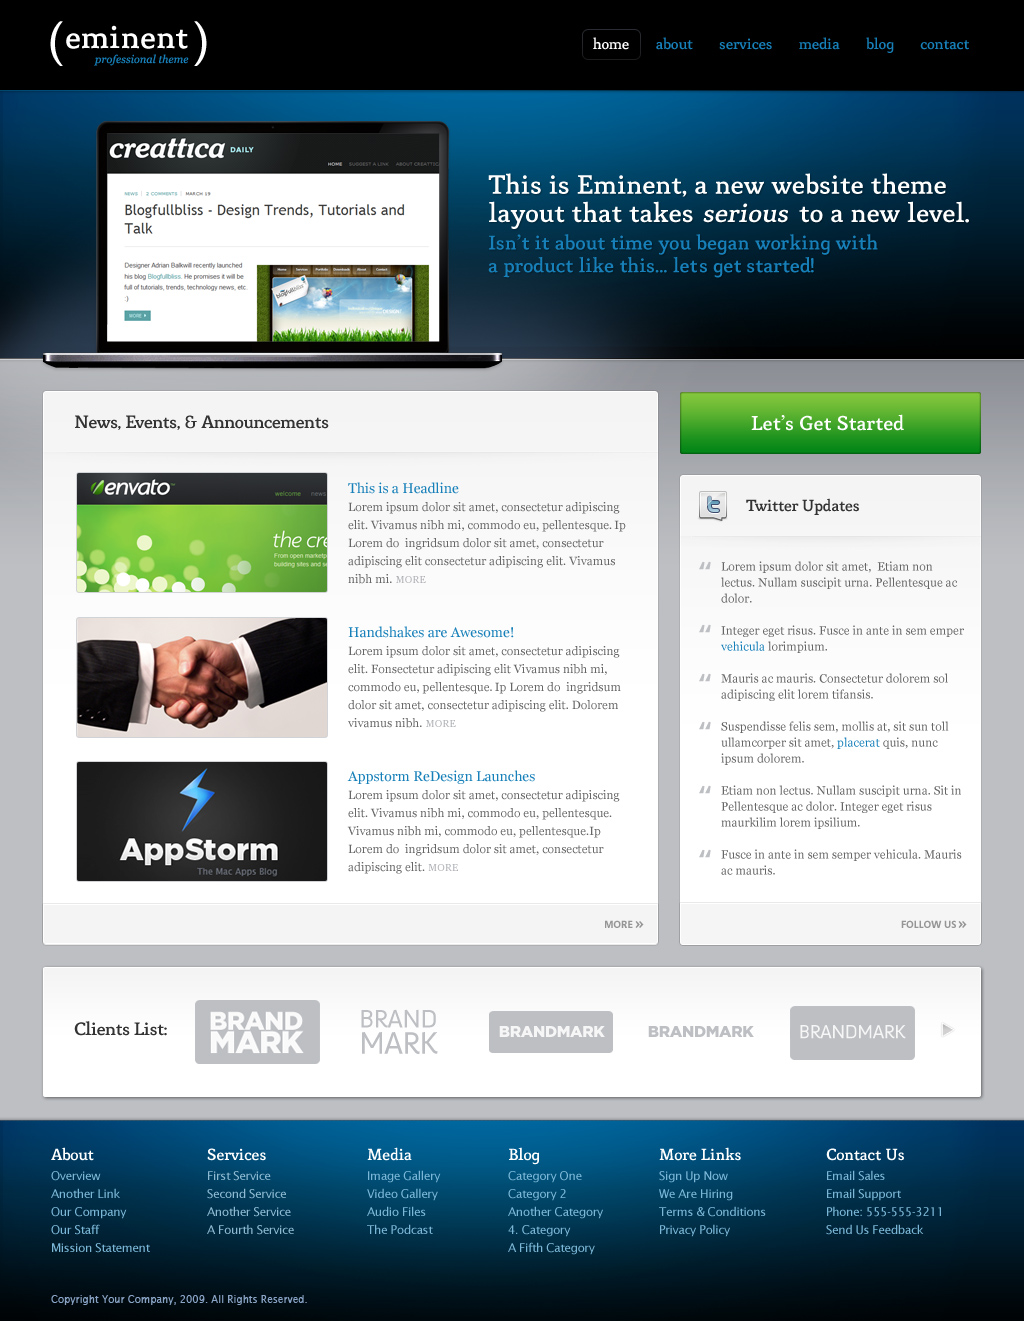 Eminent, an ultra clean & professional layout - This is the primary homepage design.